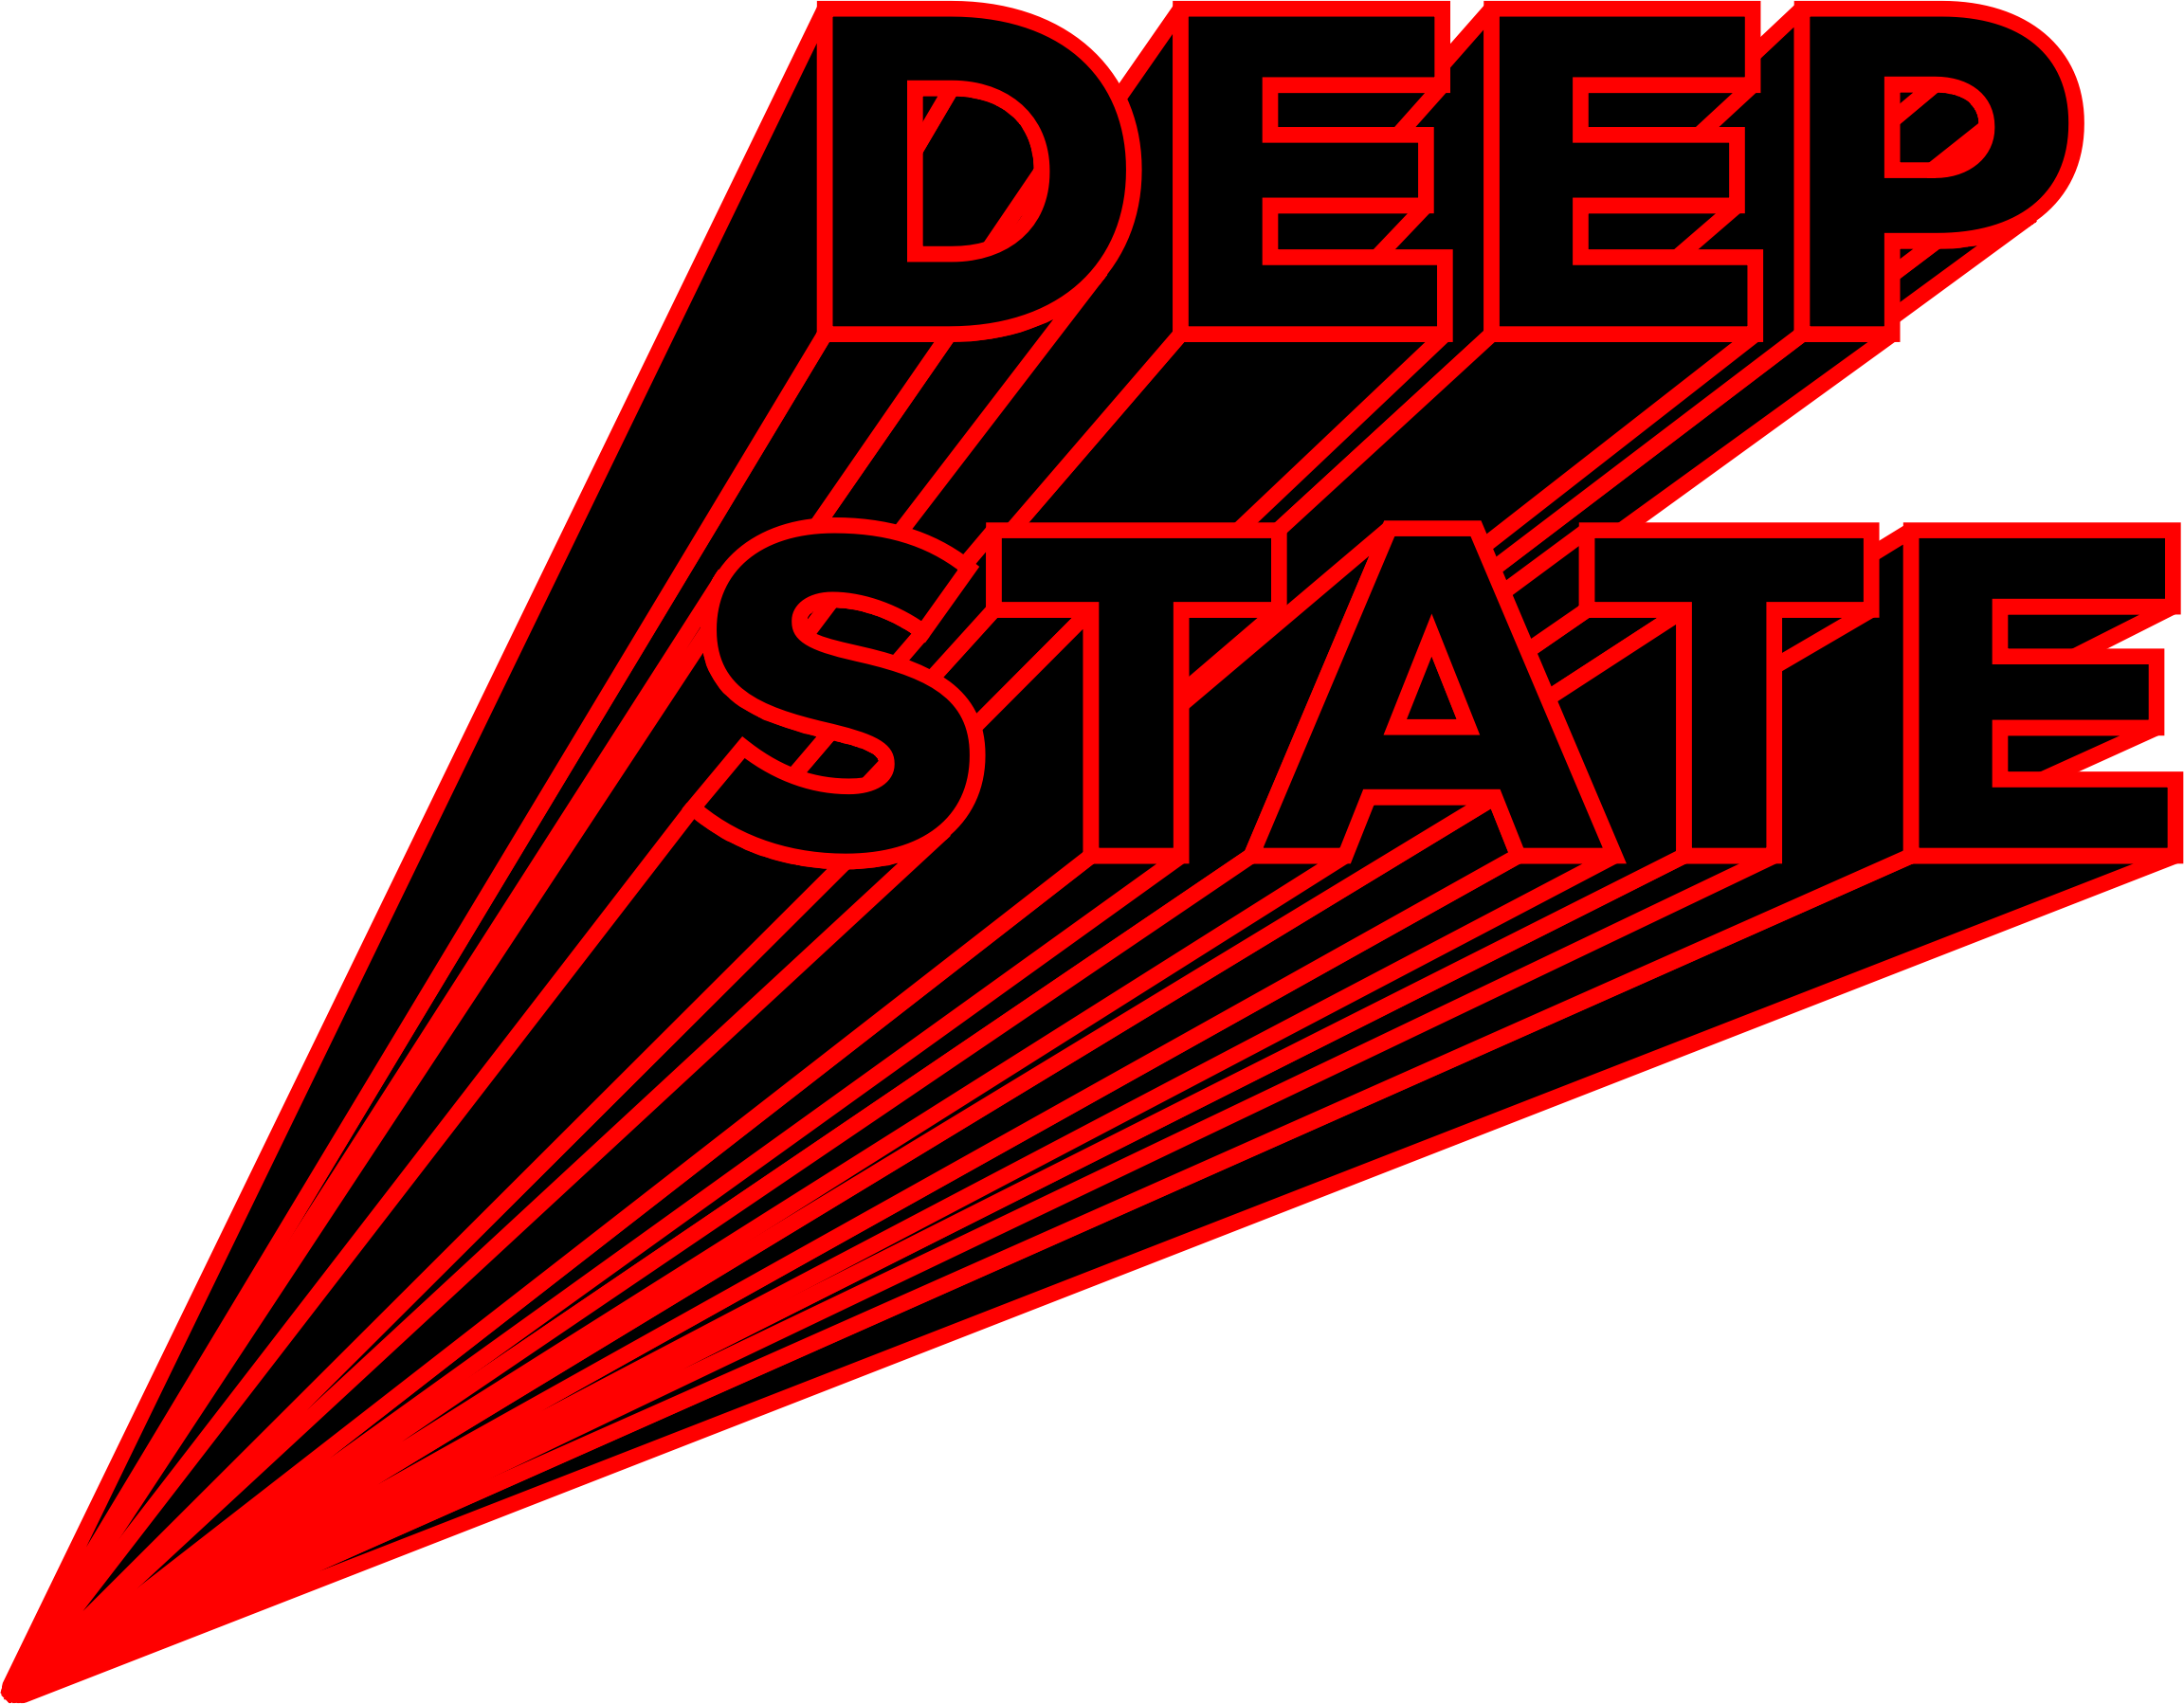 Deep State Typography by GDJ